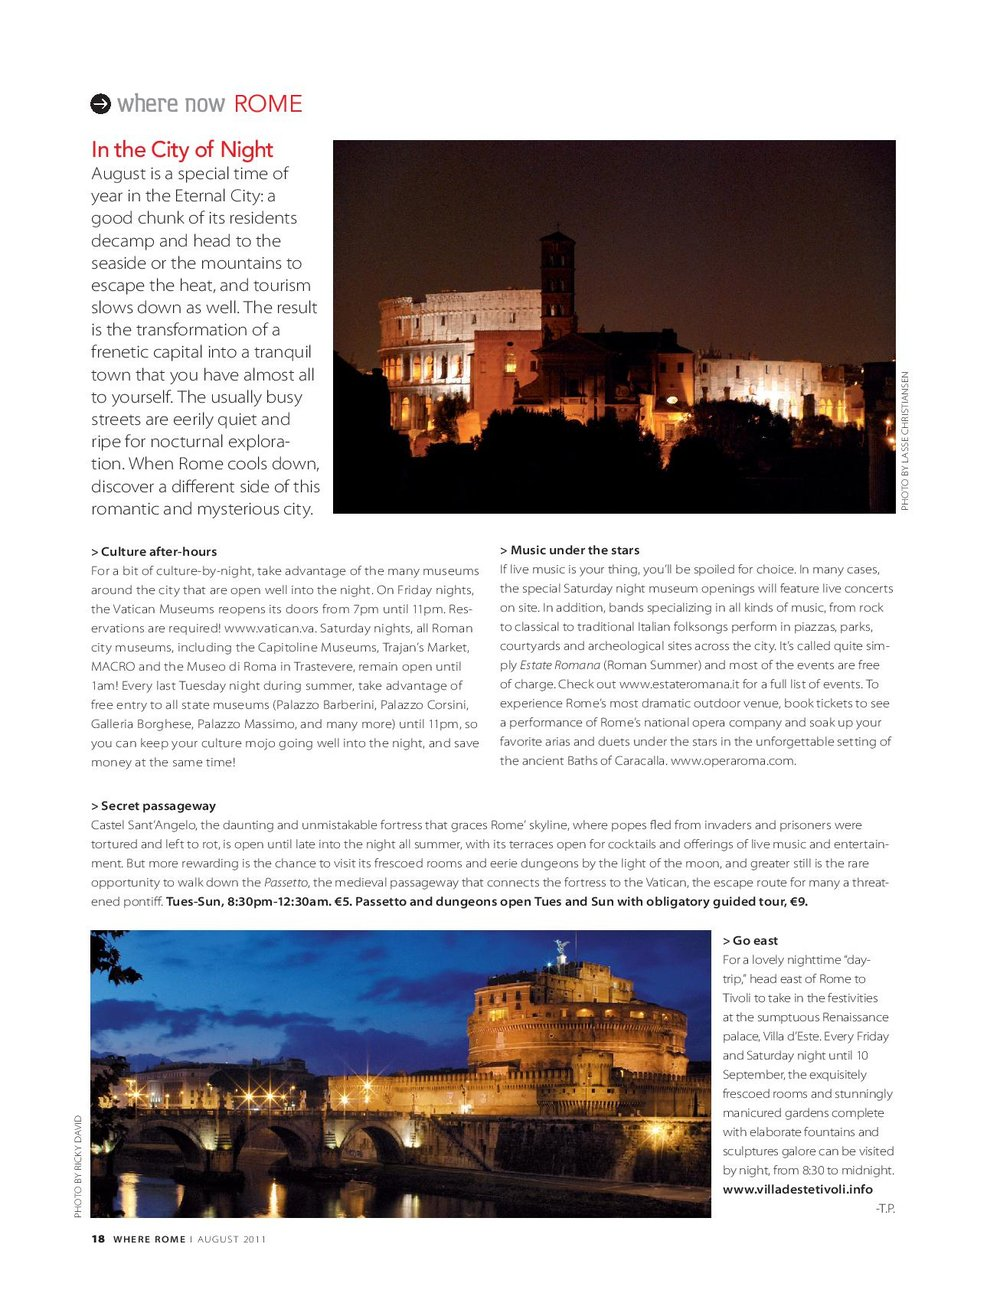 In-the-city-of-night-where-rome-aug-2011-page-001.jpg